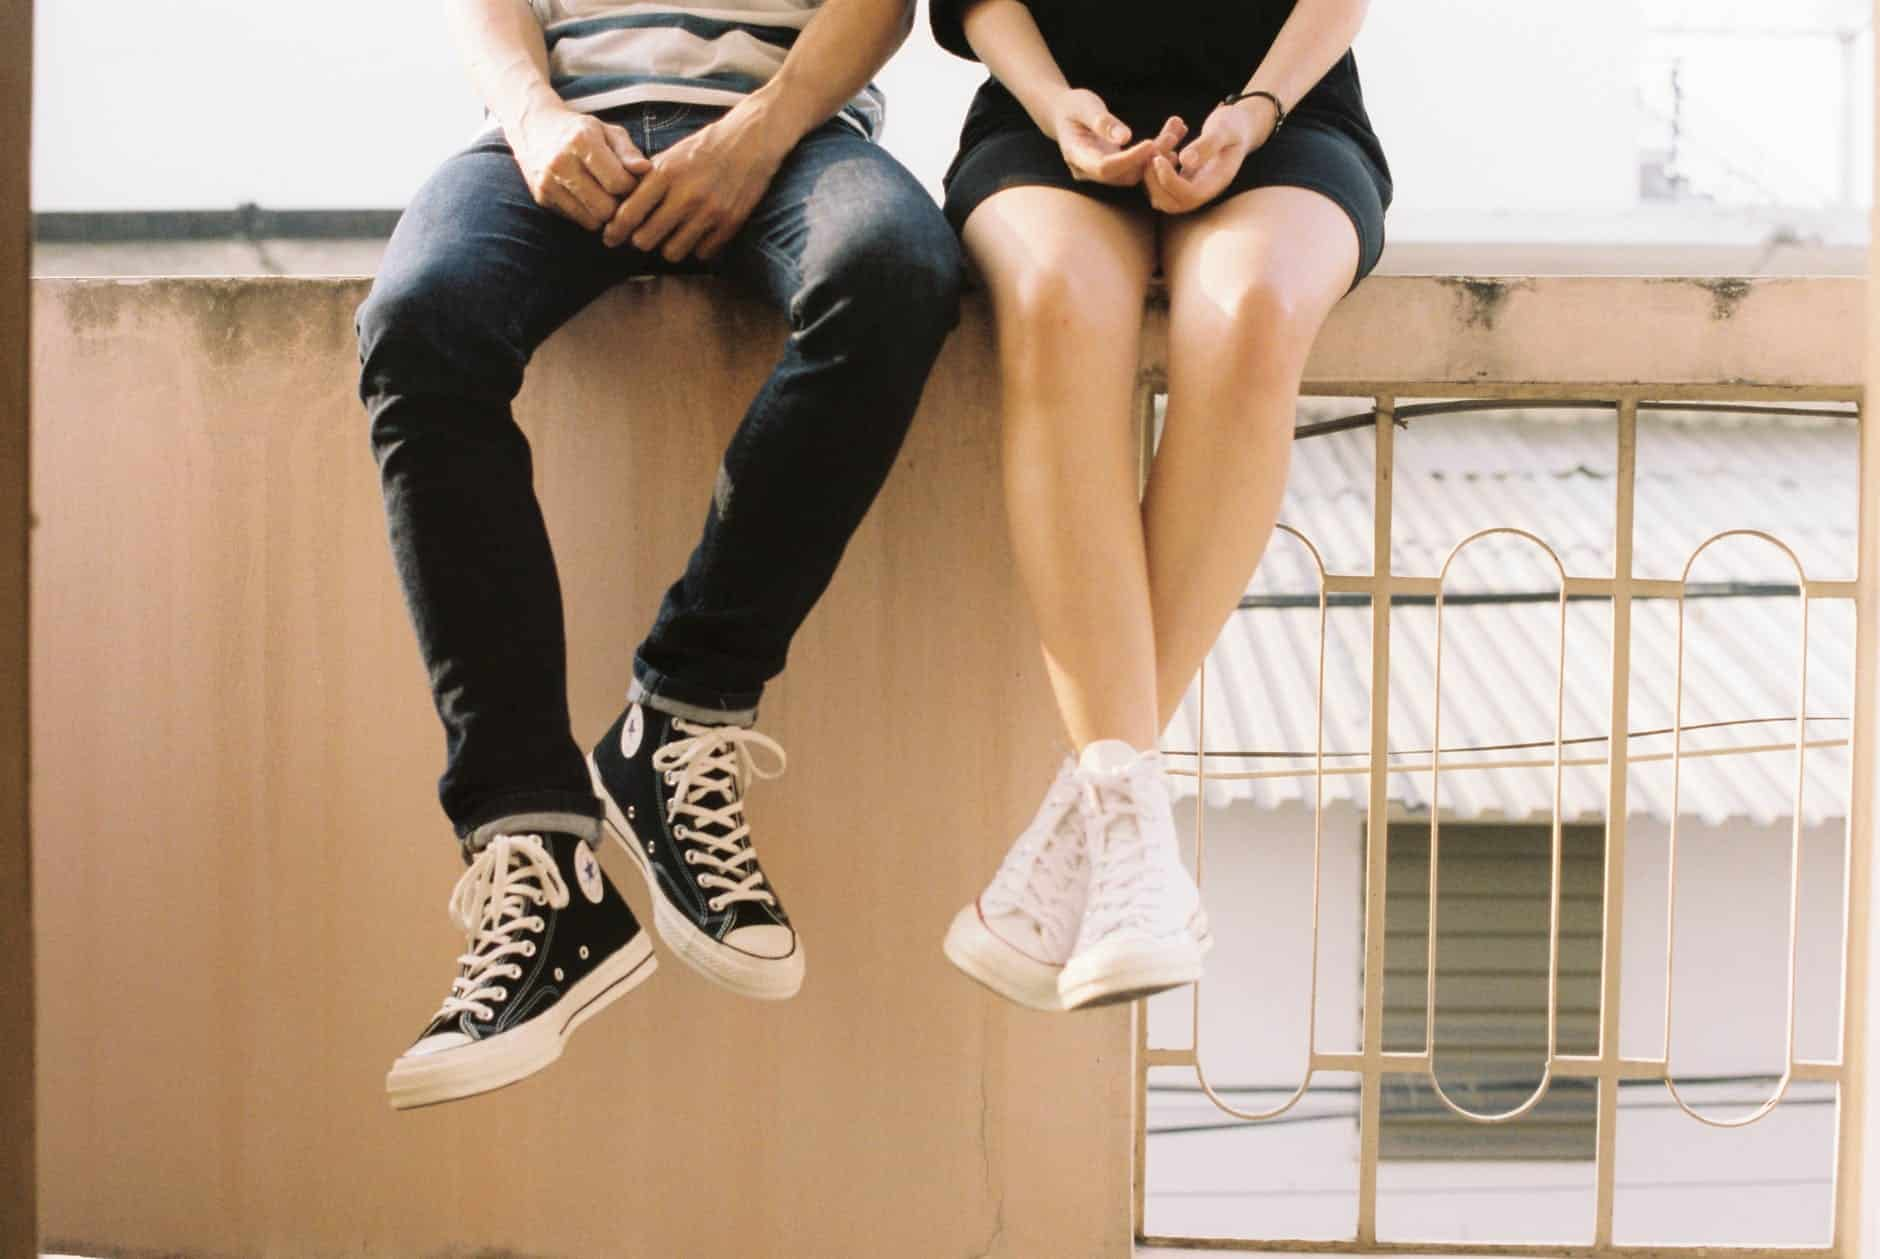 College Relationships: How to Balance Learning, Love & Dating